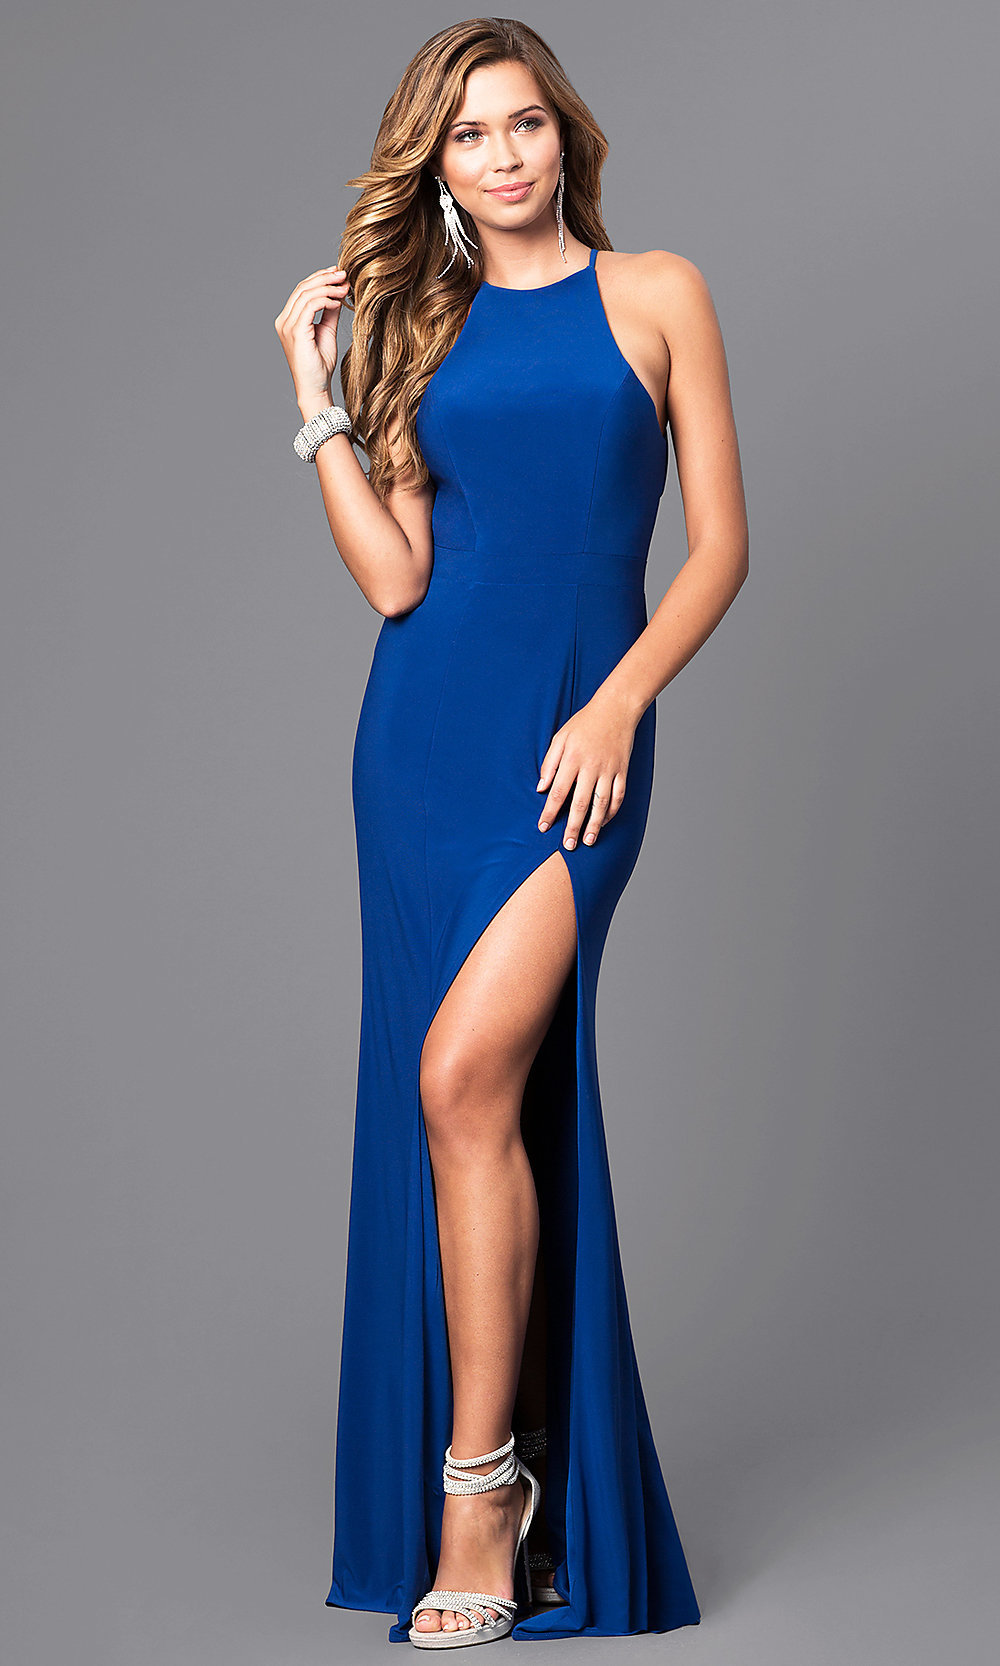 Formal Dresses Under 75 Dollars